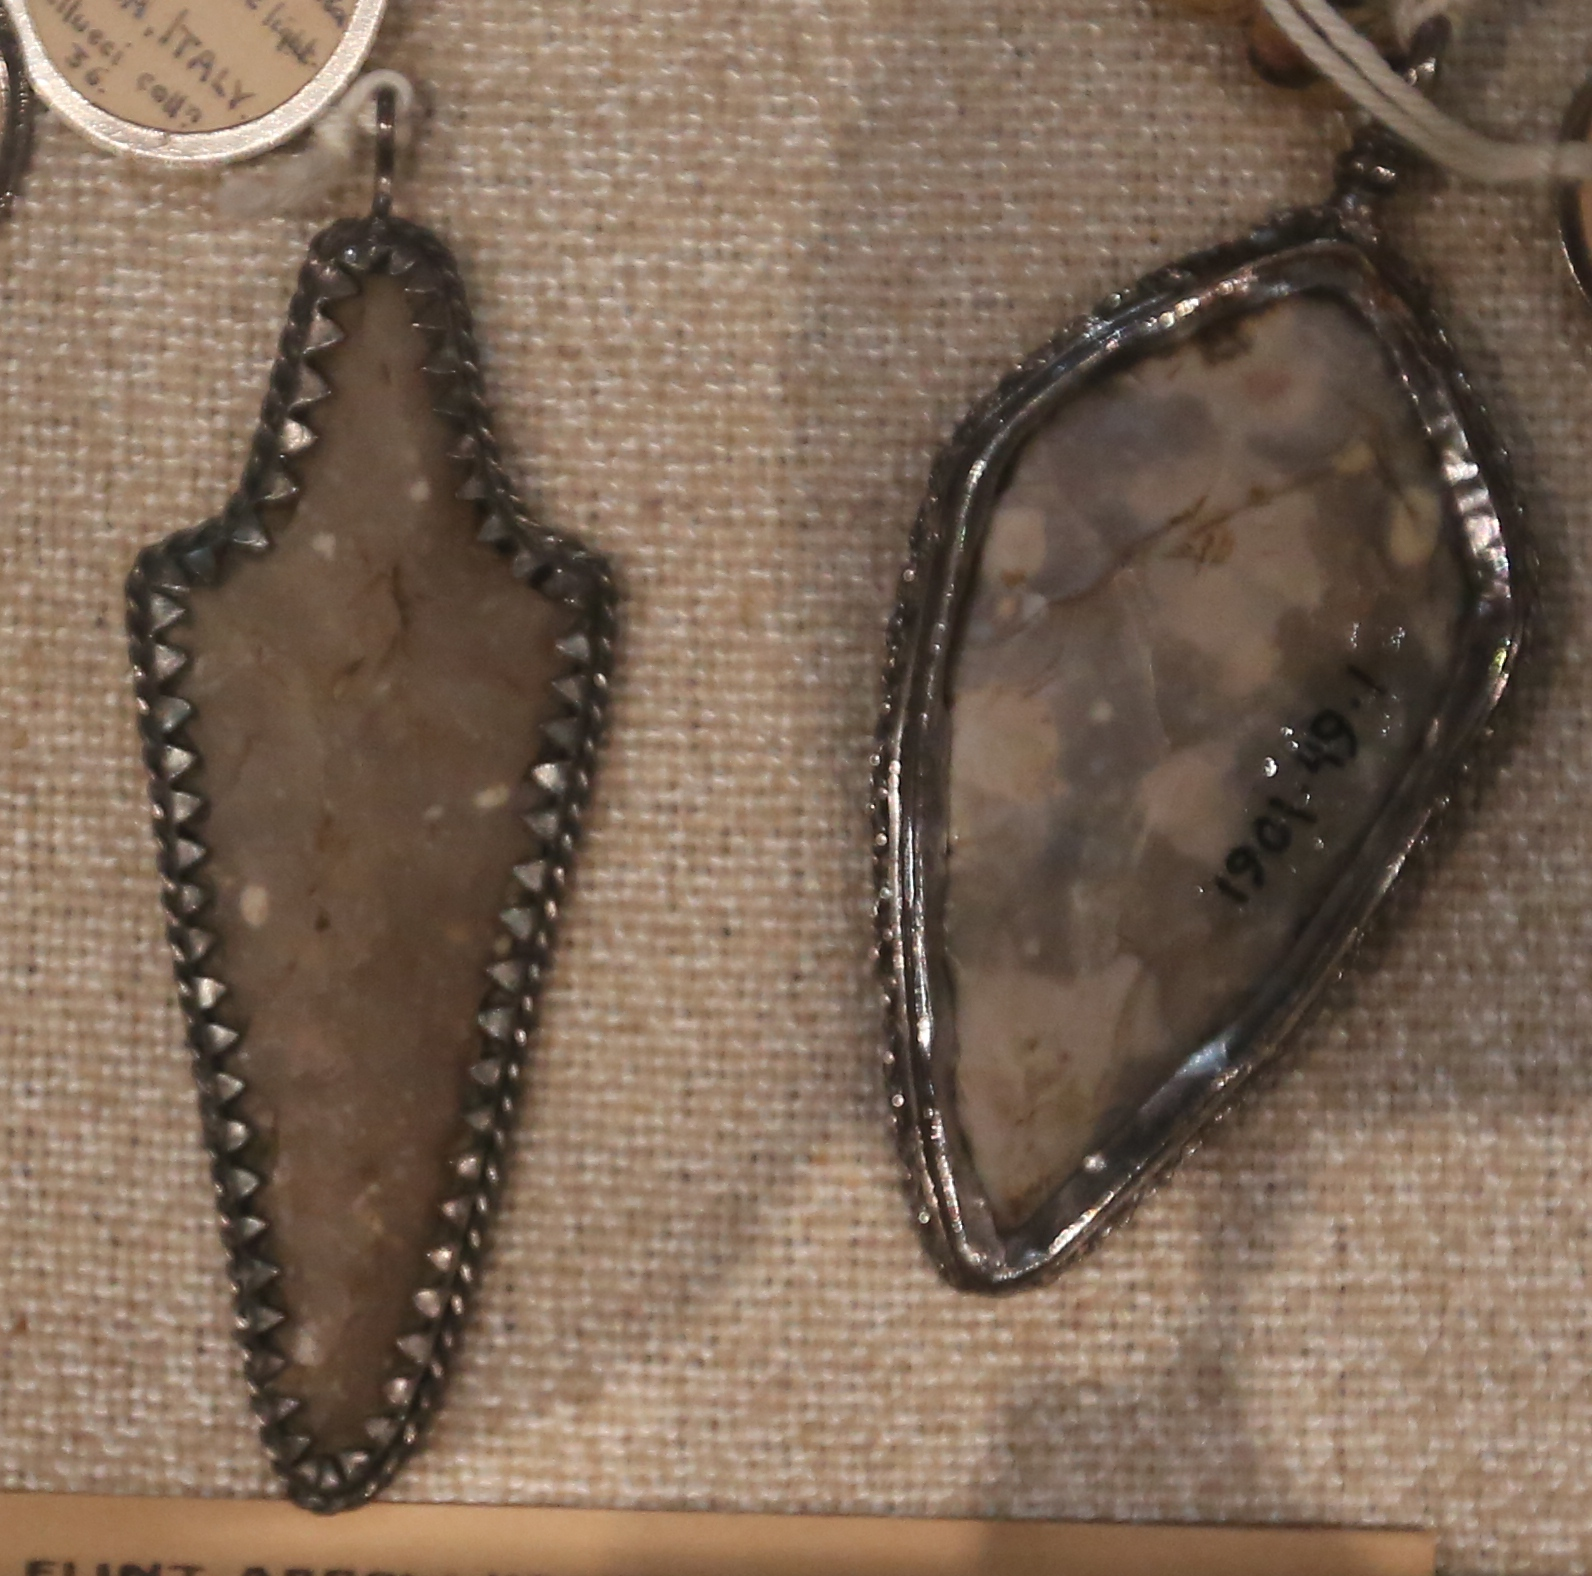 A pair of prehistoric arrowheads, believed by Old English medicine practitioners to be evidence of 'elf-shot'.